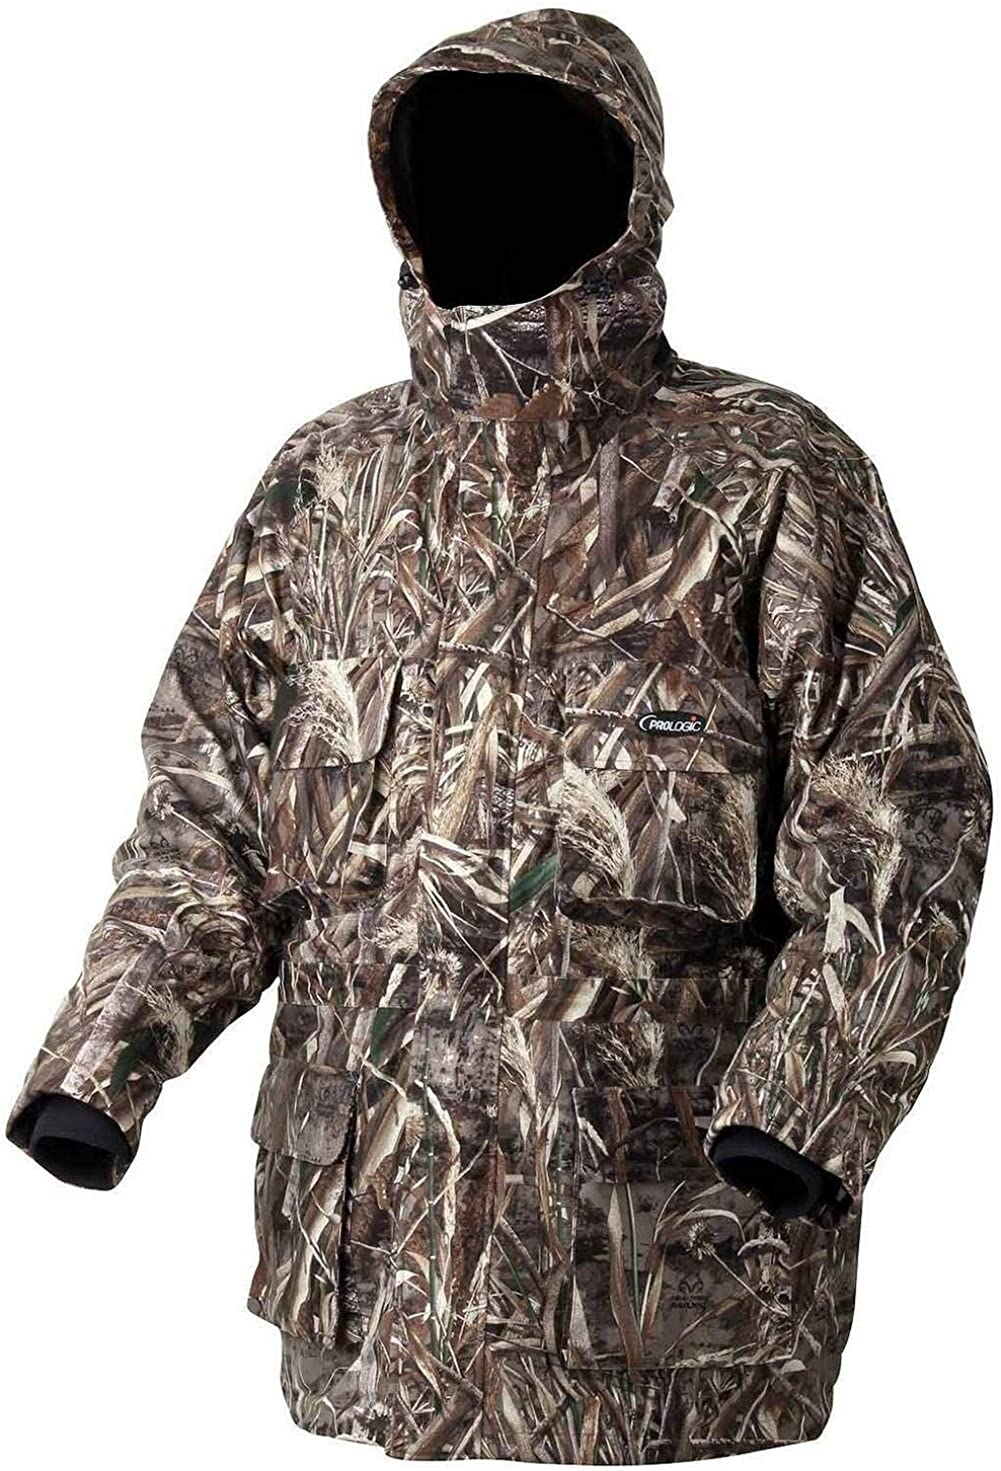 PROLOGIC Mens Max5 Thermo Armour Pro Jacket